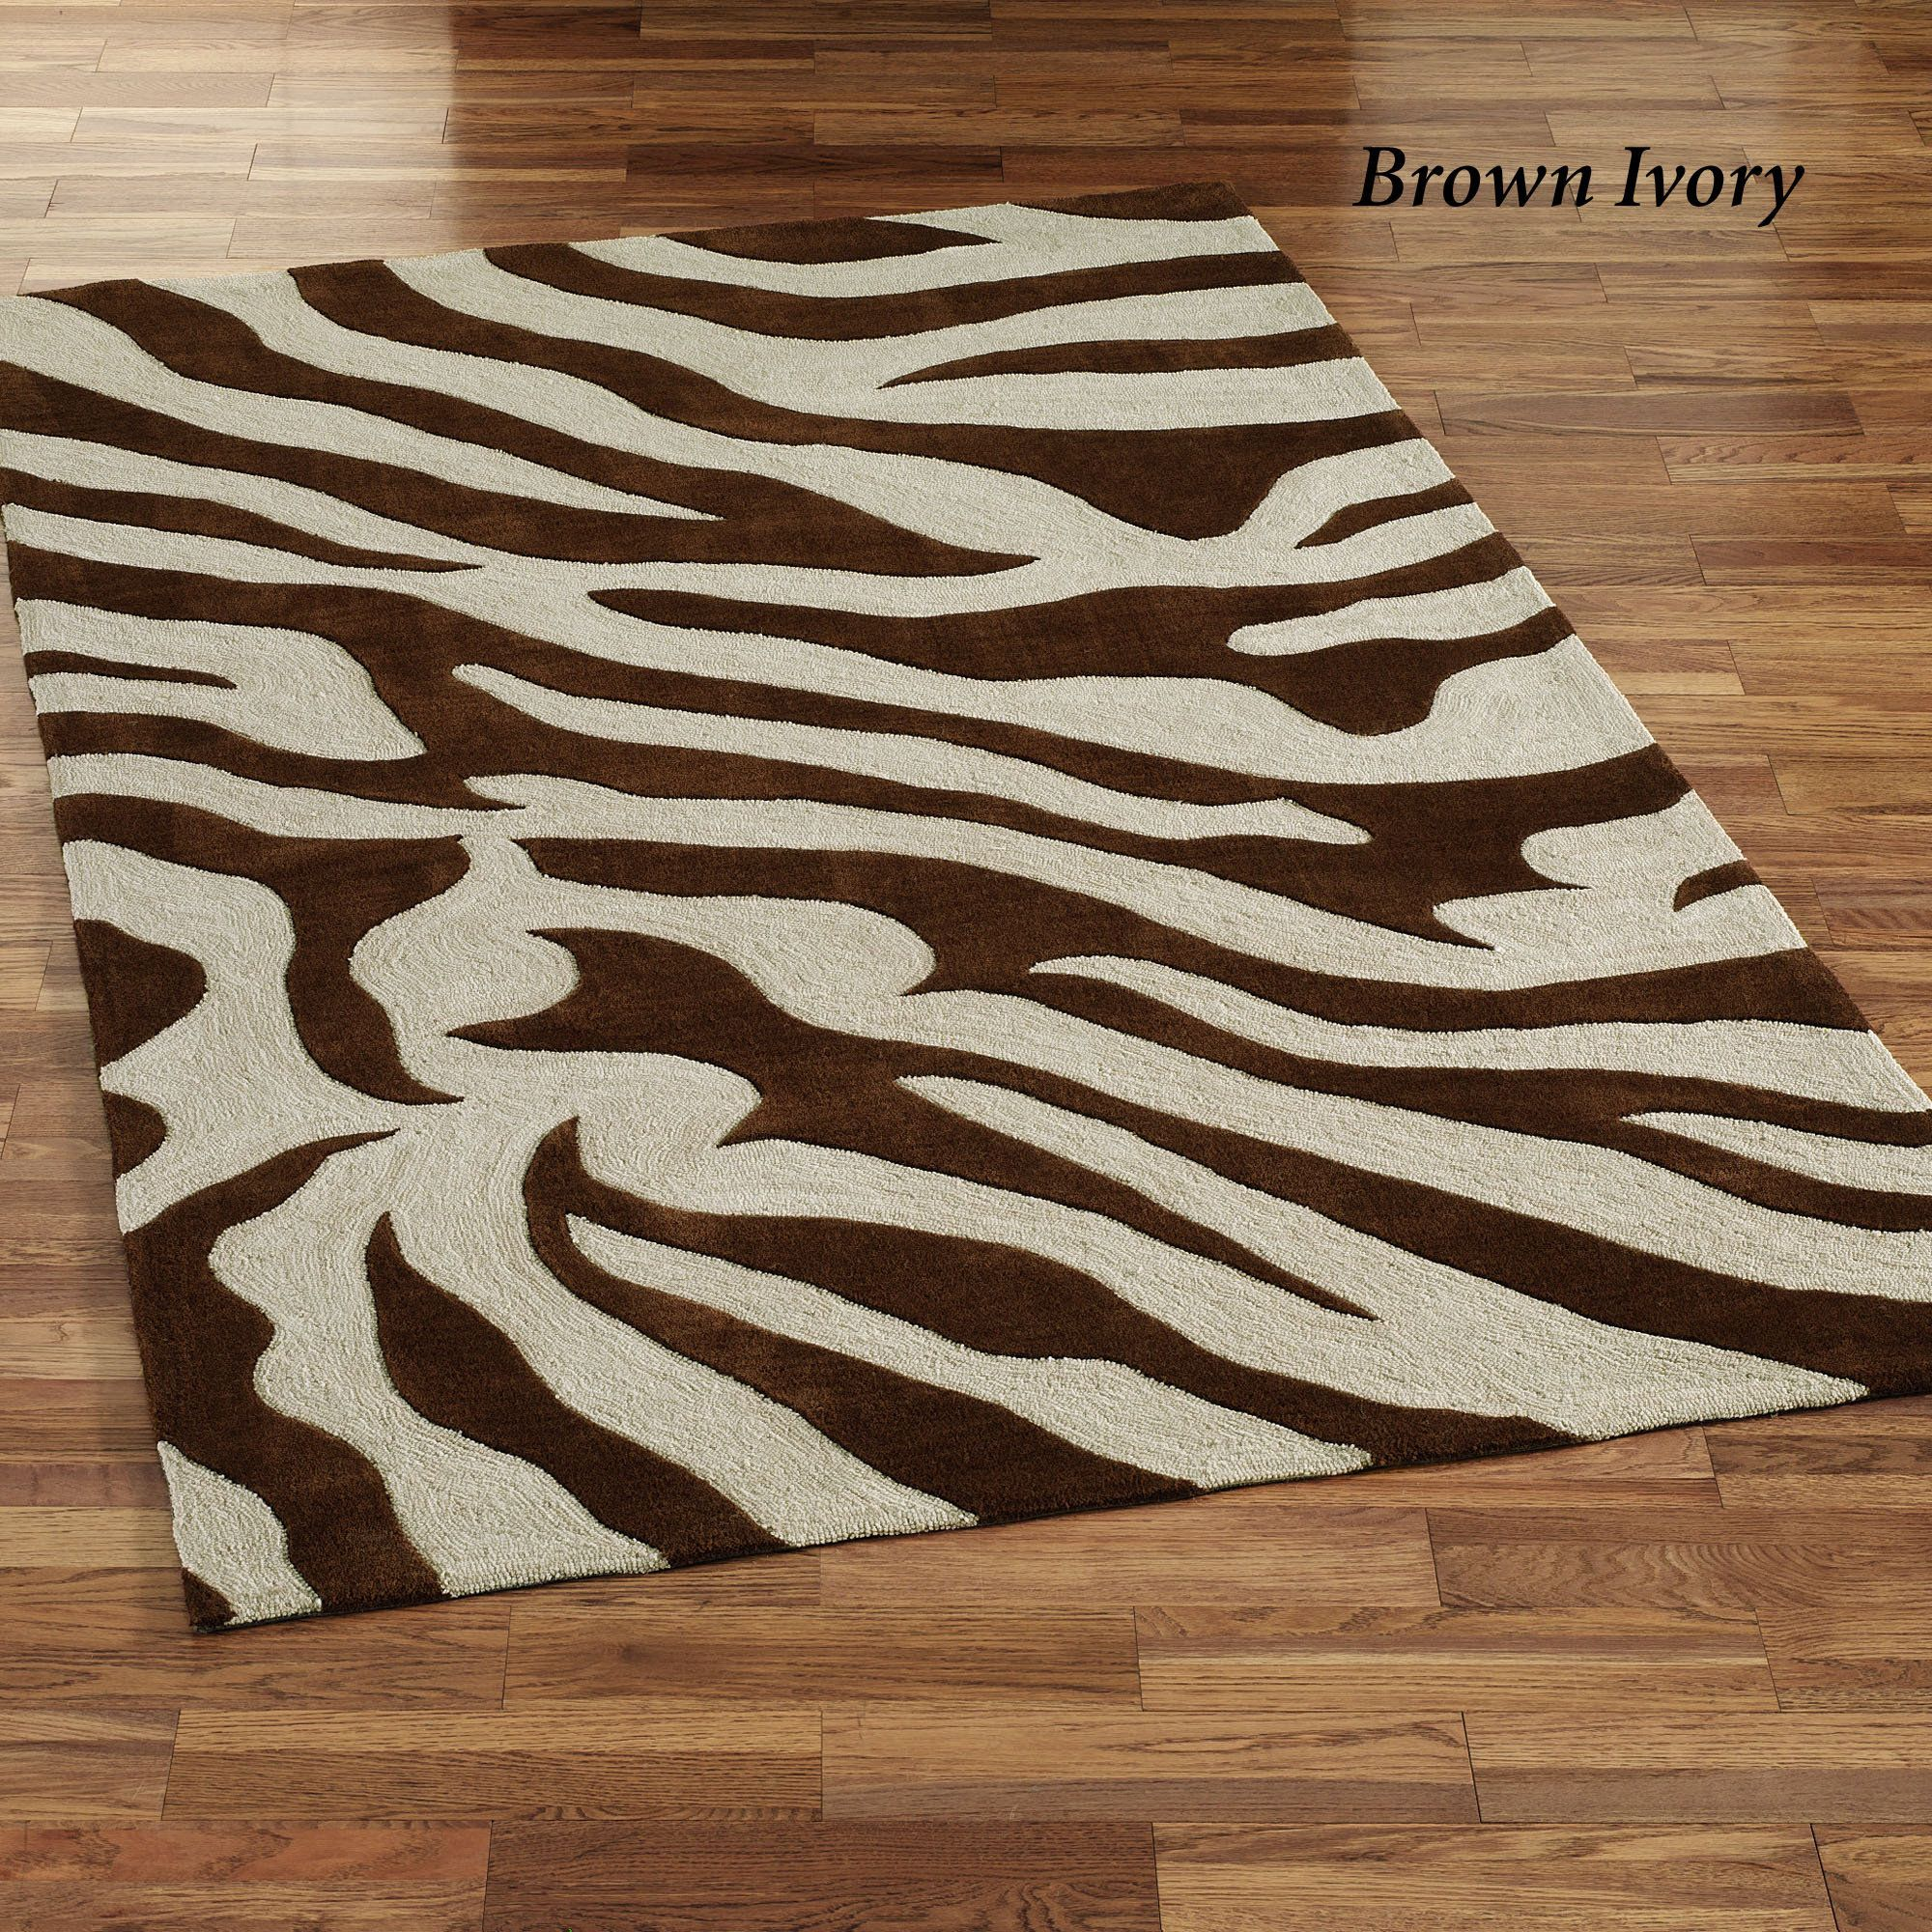 Most Por Area Rugs Lowes Cool Design Ideas With Inspiring